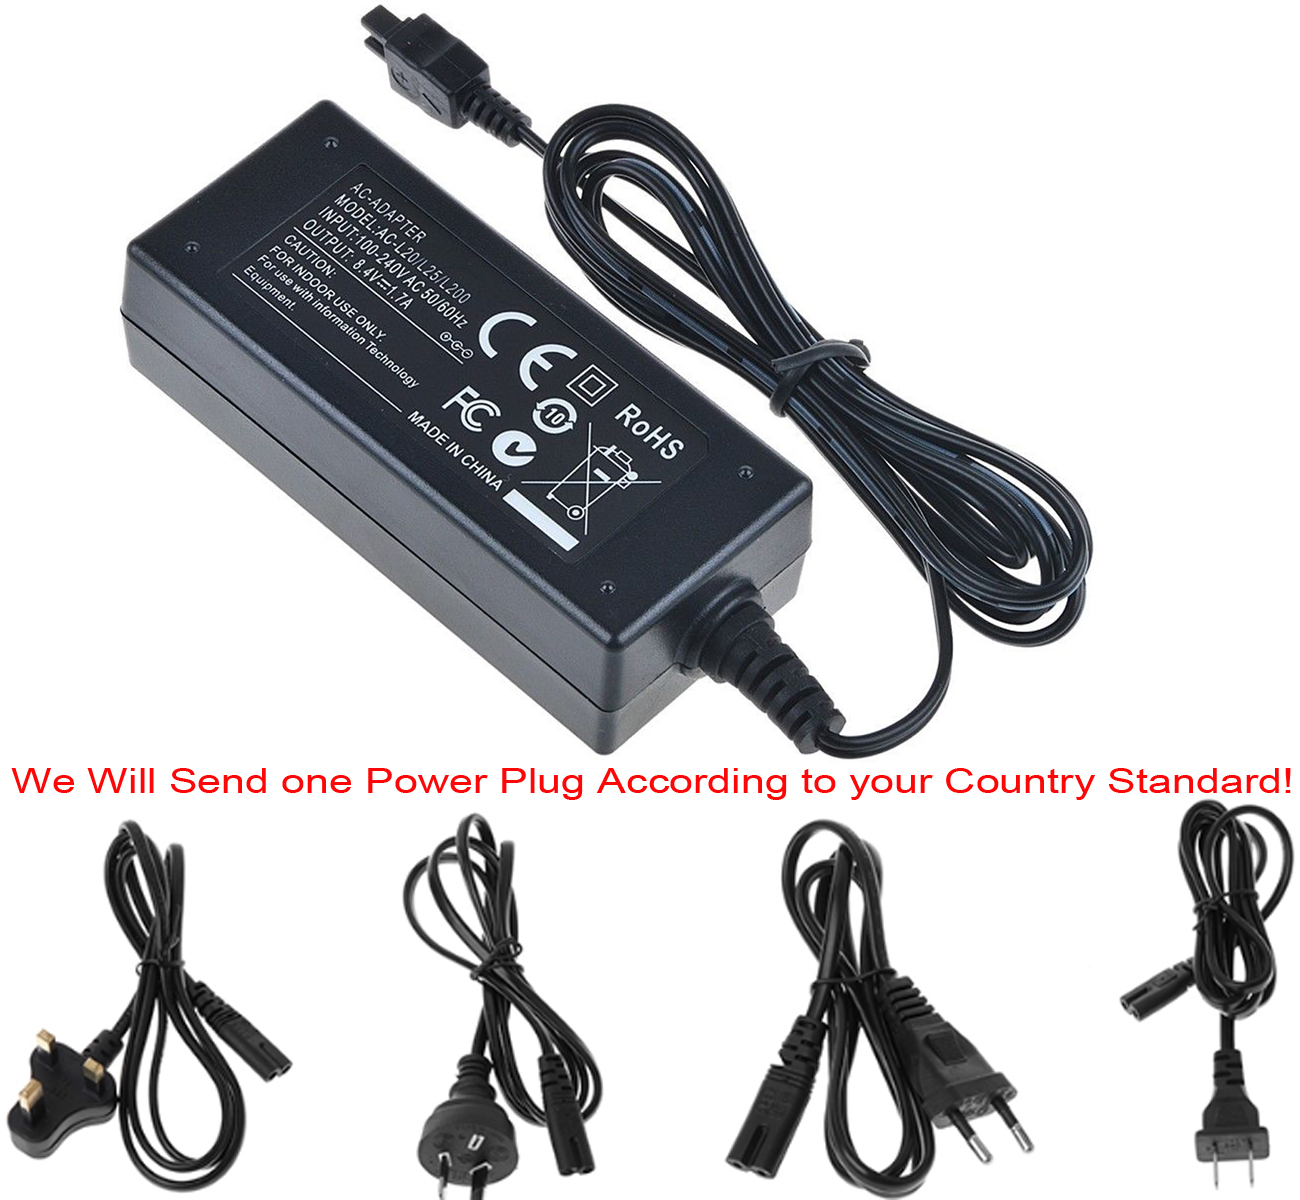 AC Power Adapter Charger for Sony HDR-CX550VE, HDR-CX560VE, HDR-CX570E, HDR-CX580VE, HDR-CX590VE, HDR-CX690E Handycam Camcorder